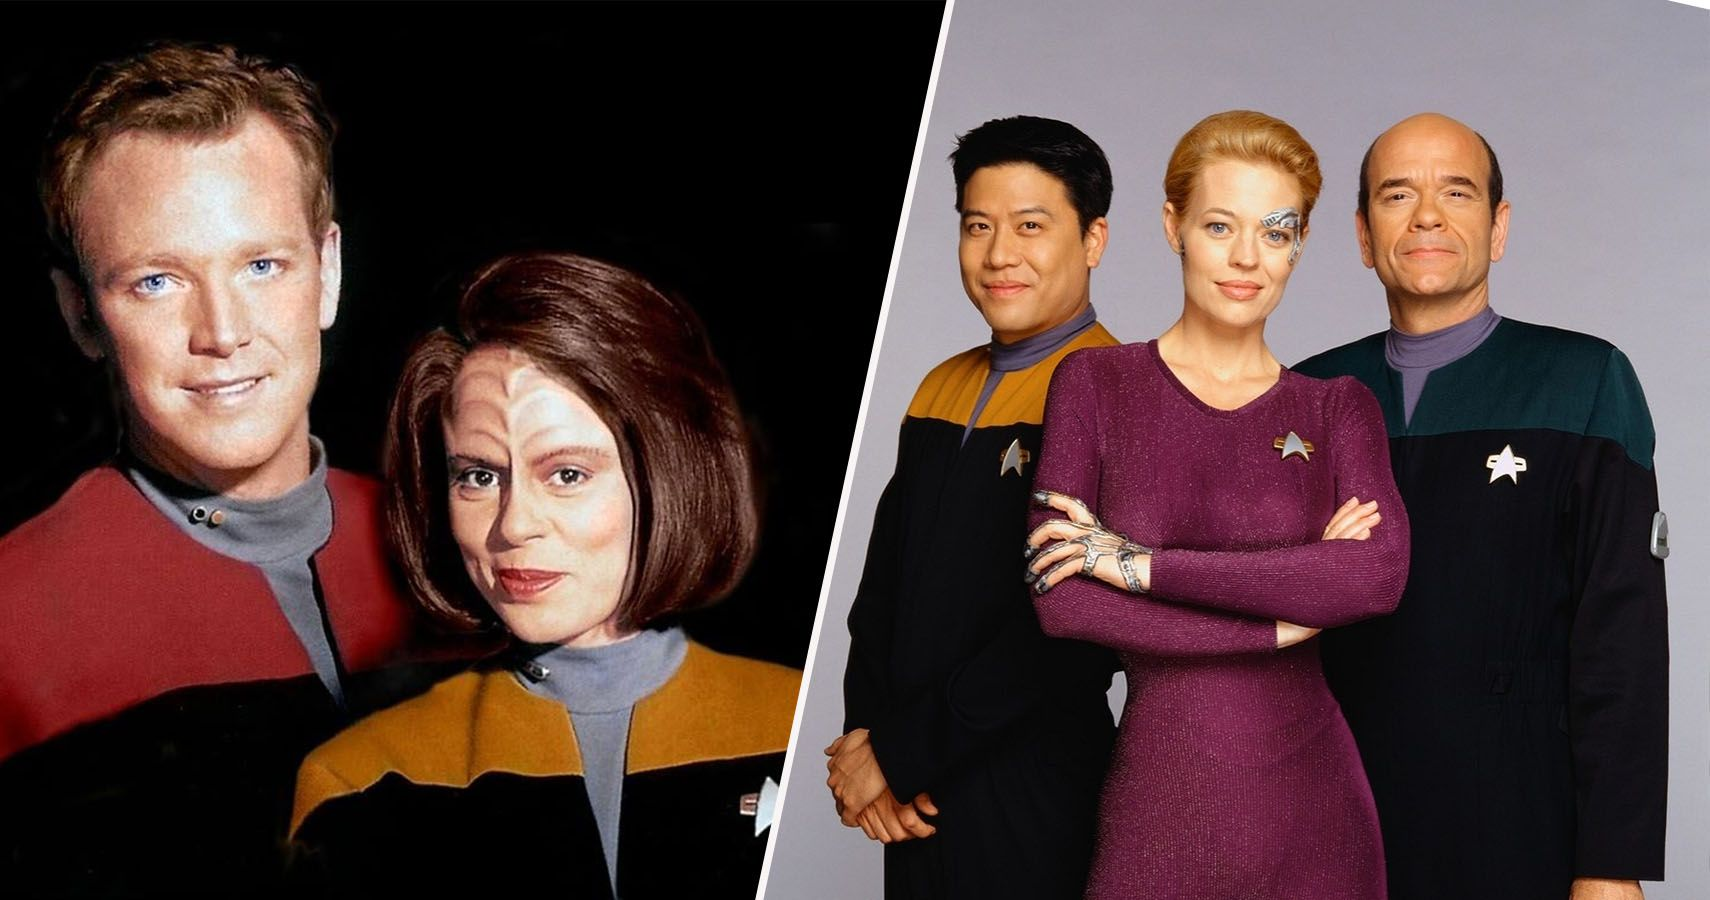 Star Trek: 10 Hidden Details About The Main Characters Of Voyager